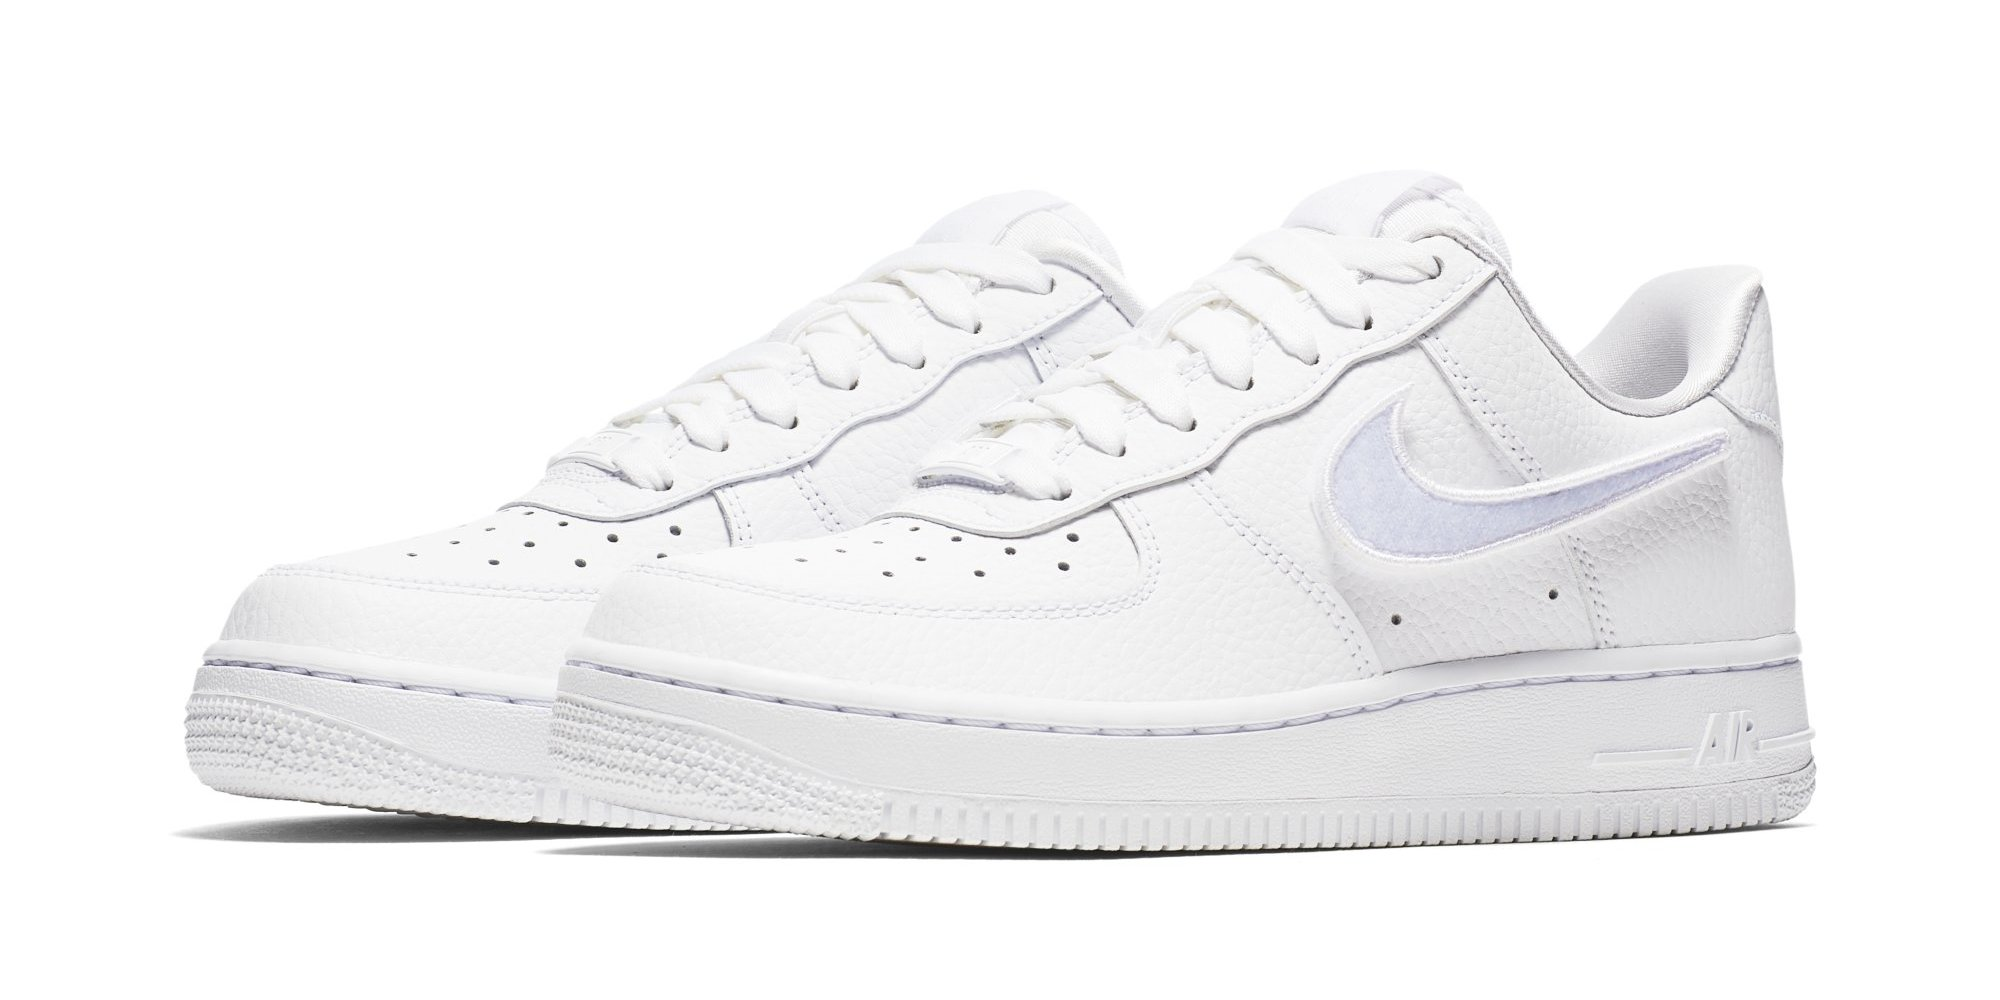 a31142f5af WMNS Nike Air Force 1-100 AQ3621-111 Release Date | Sole Collector